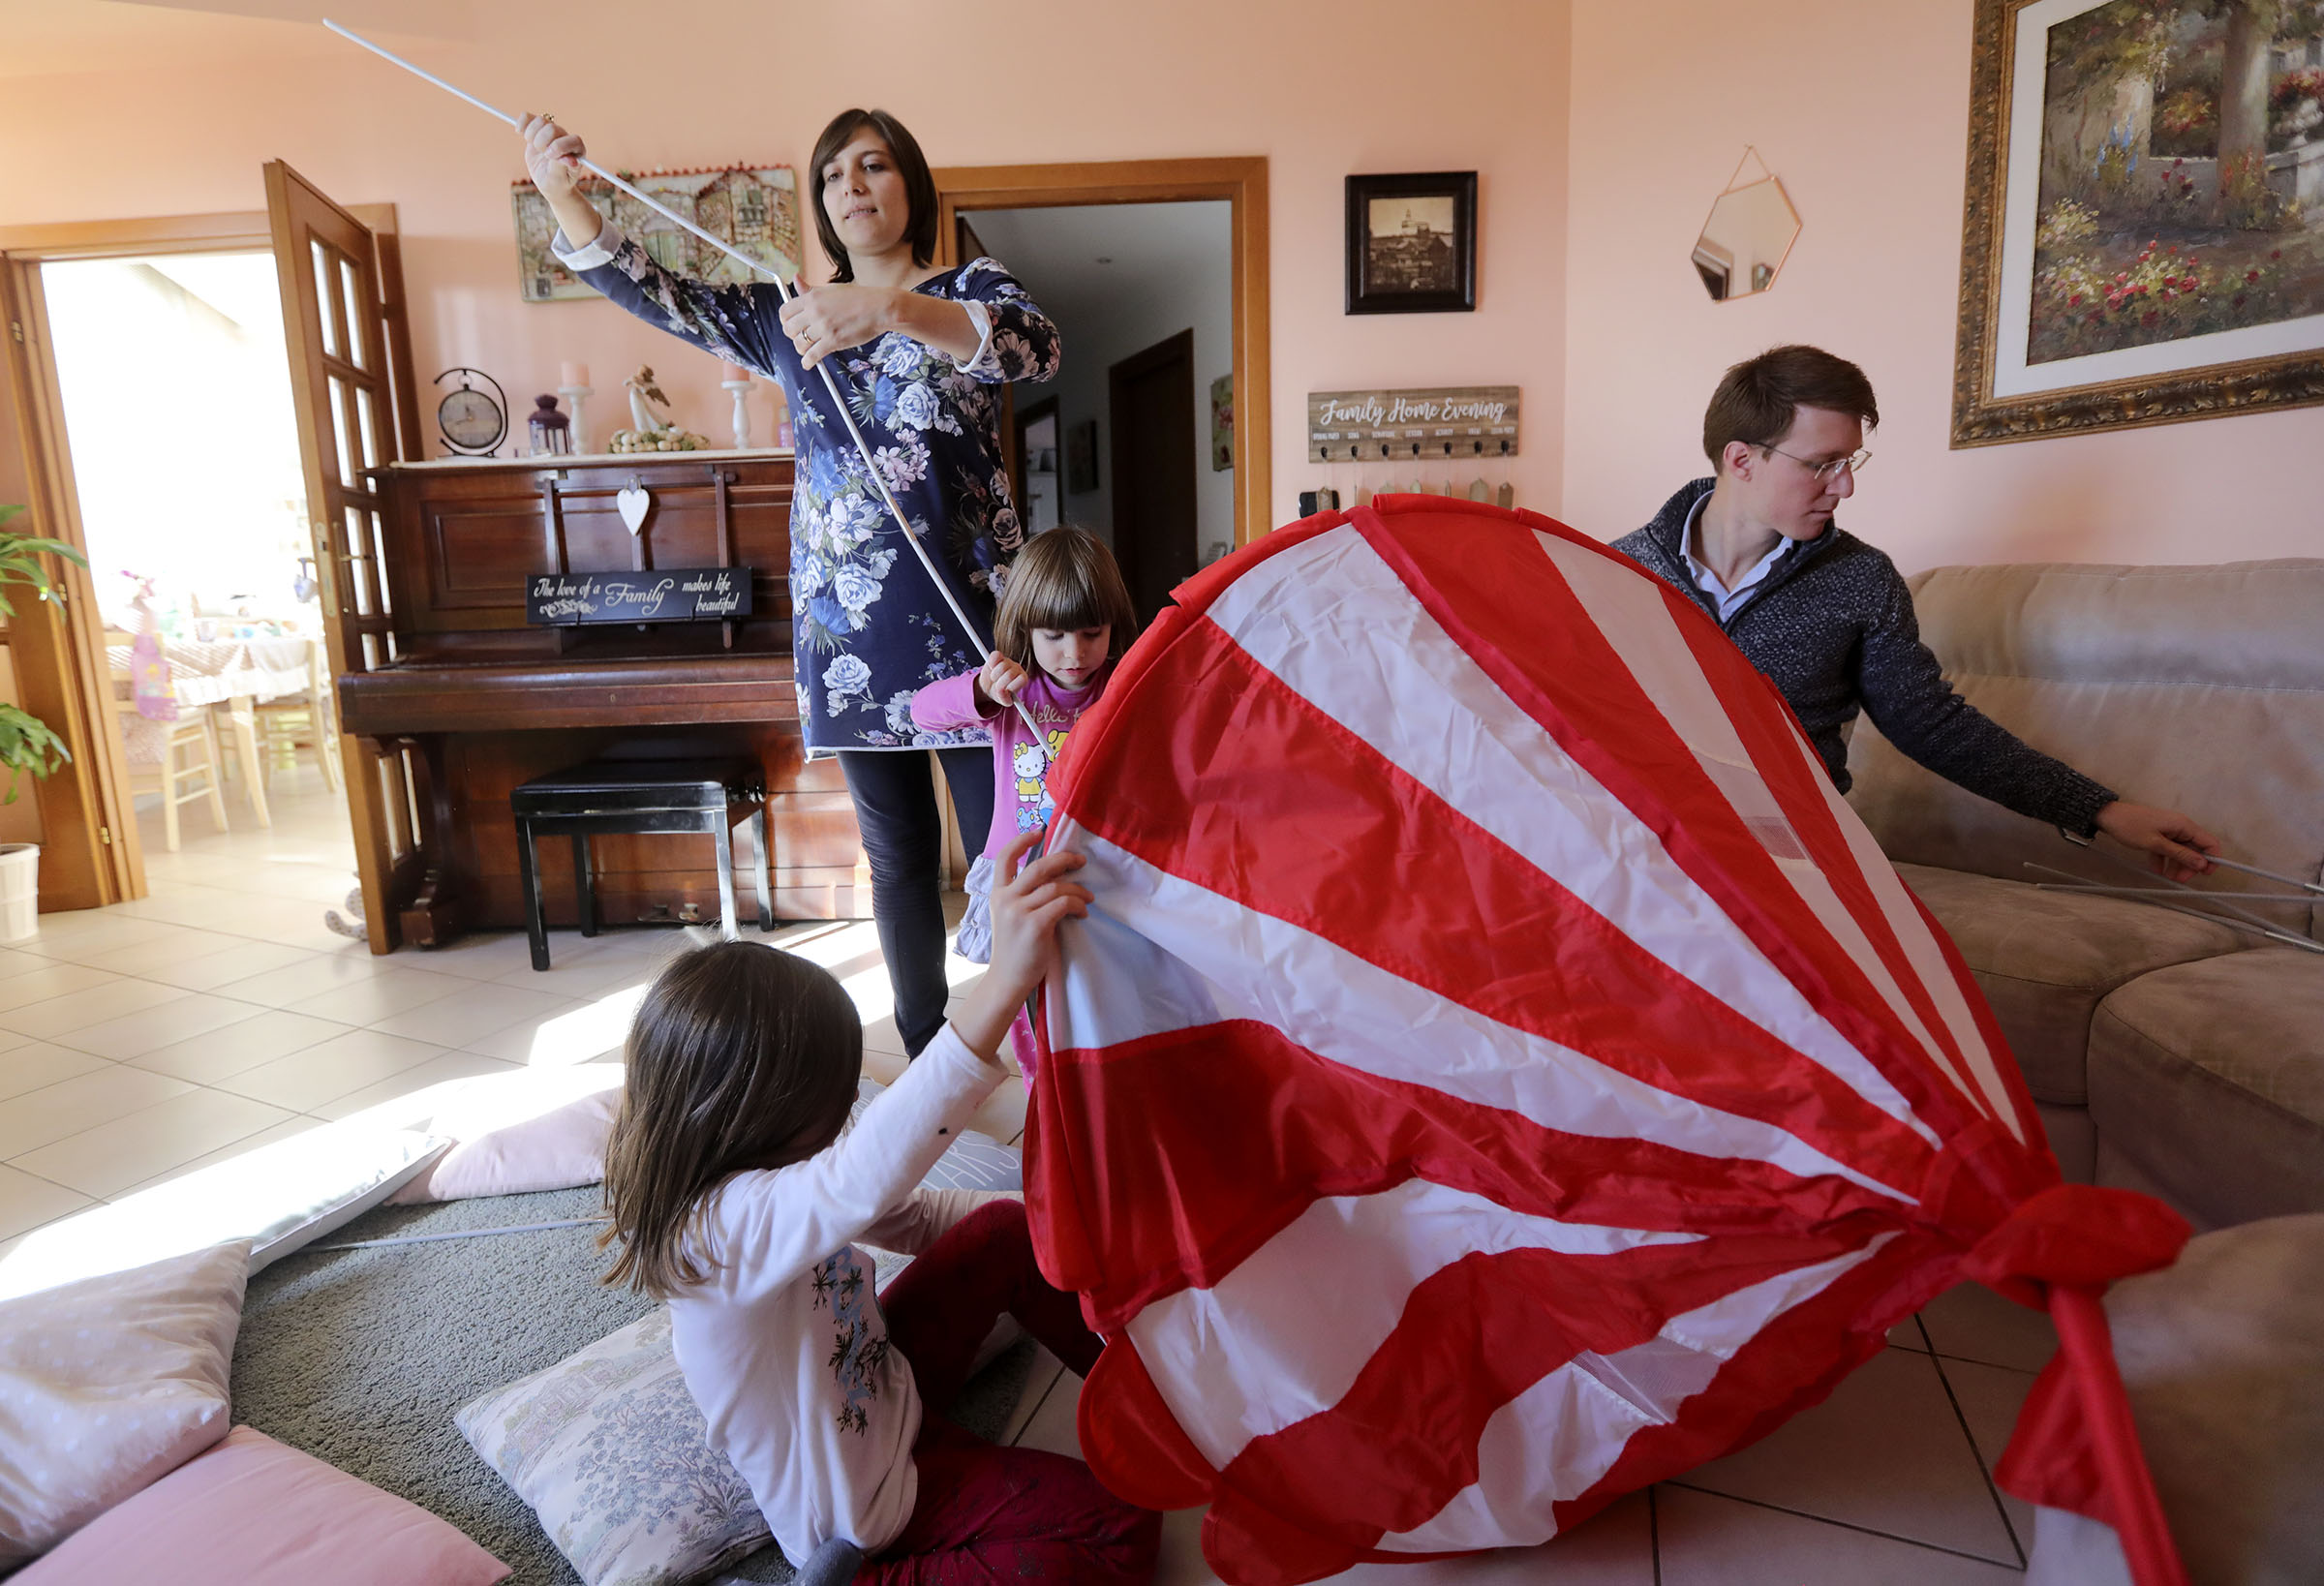 Emma and Alice Salerno put a tent together with their parents, Norma and Daniele, at home in Rome, Italy, on Sunday morning, Nov. 18, 2018.